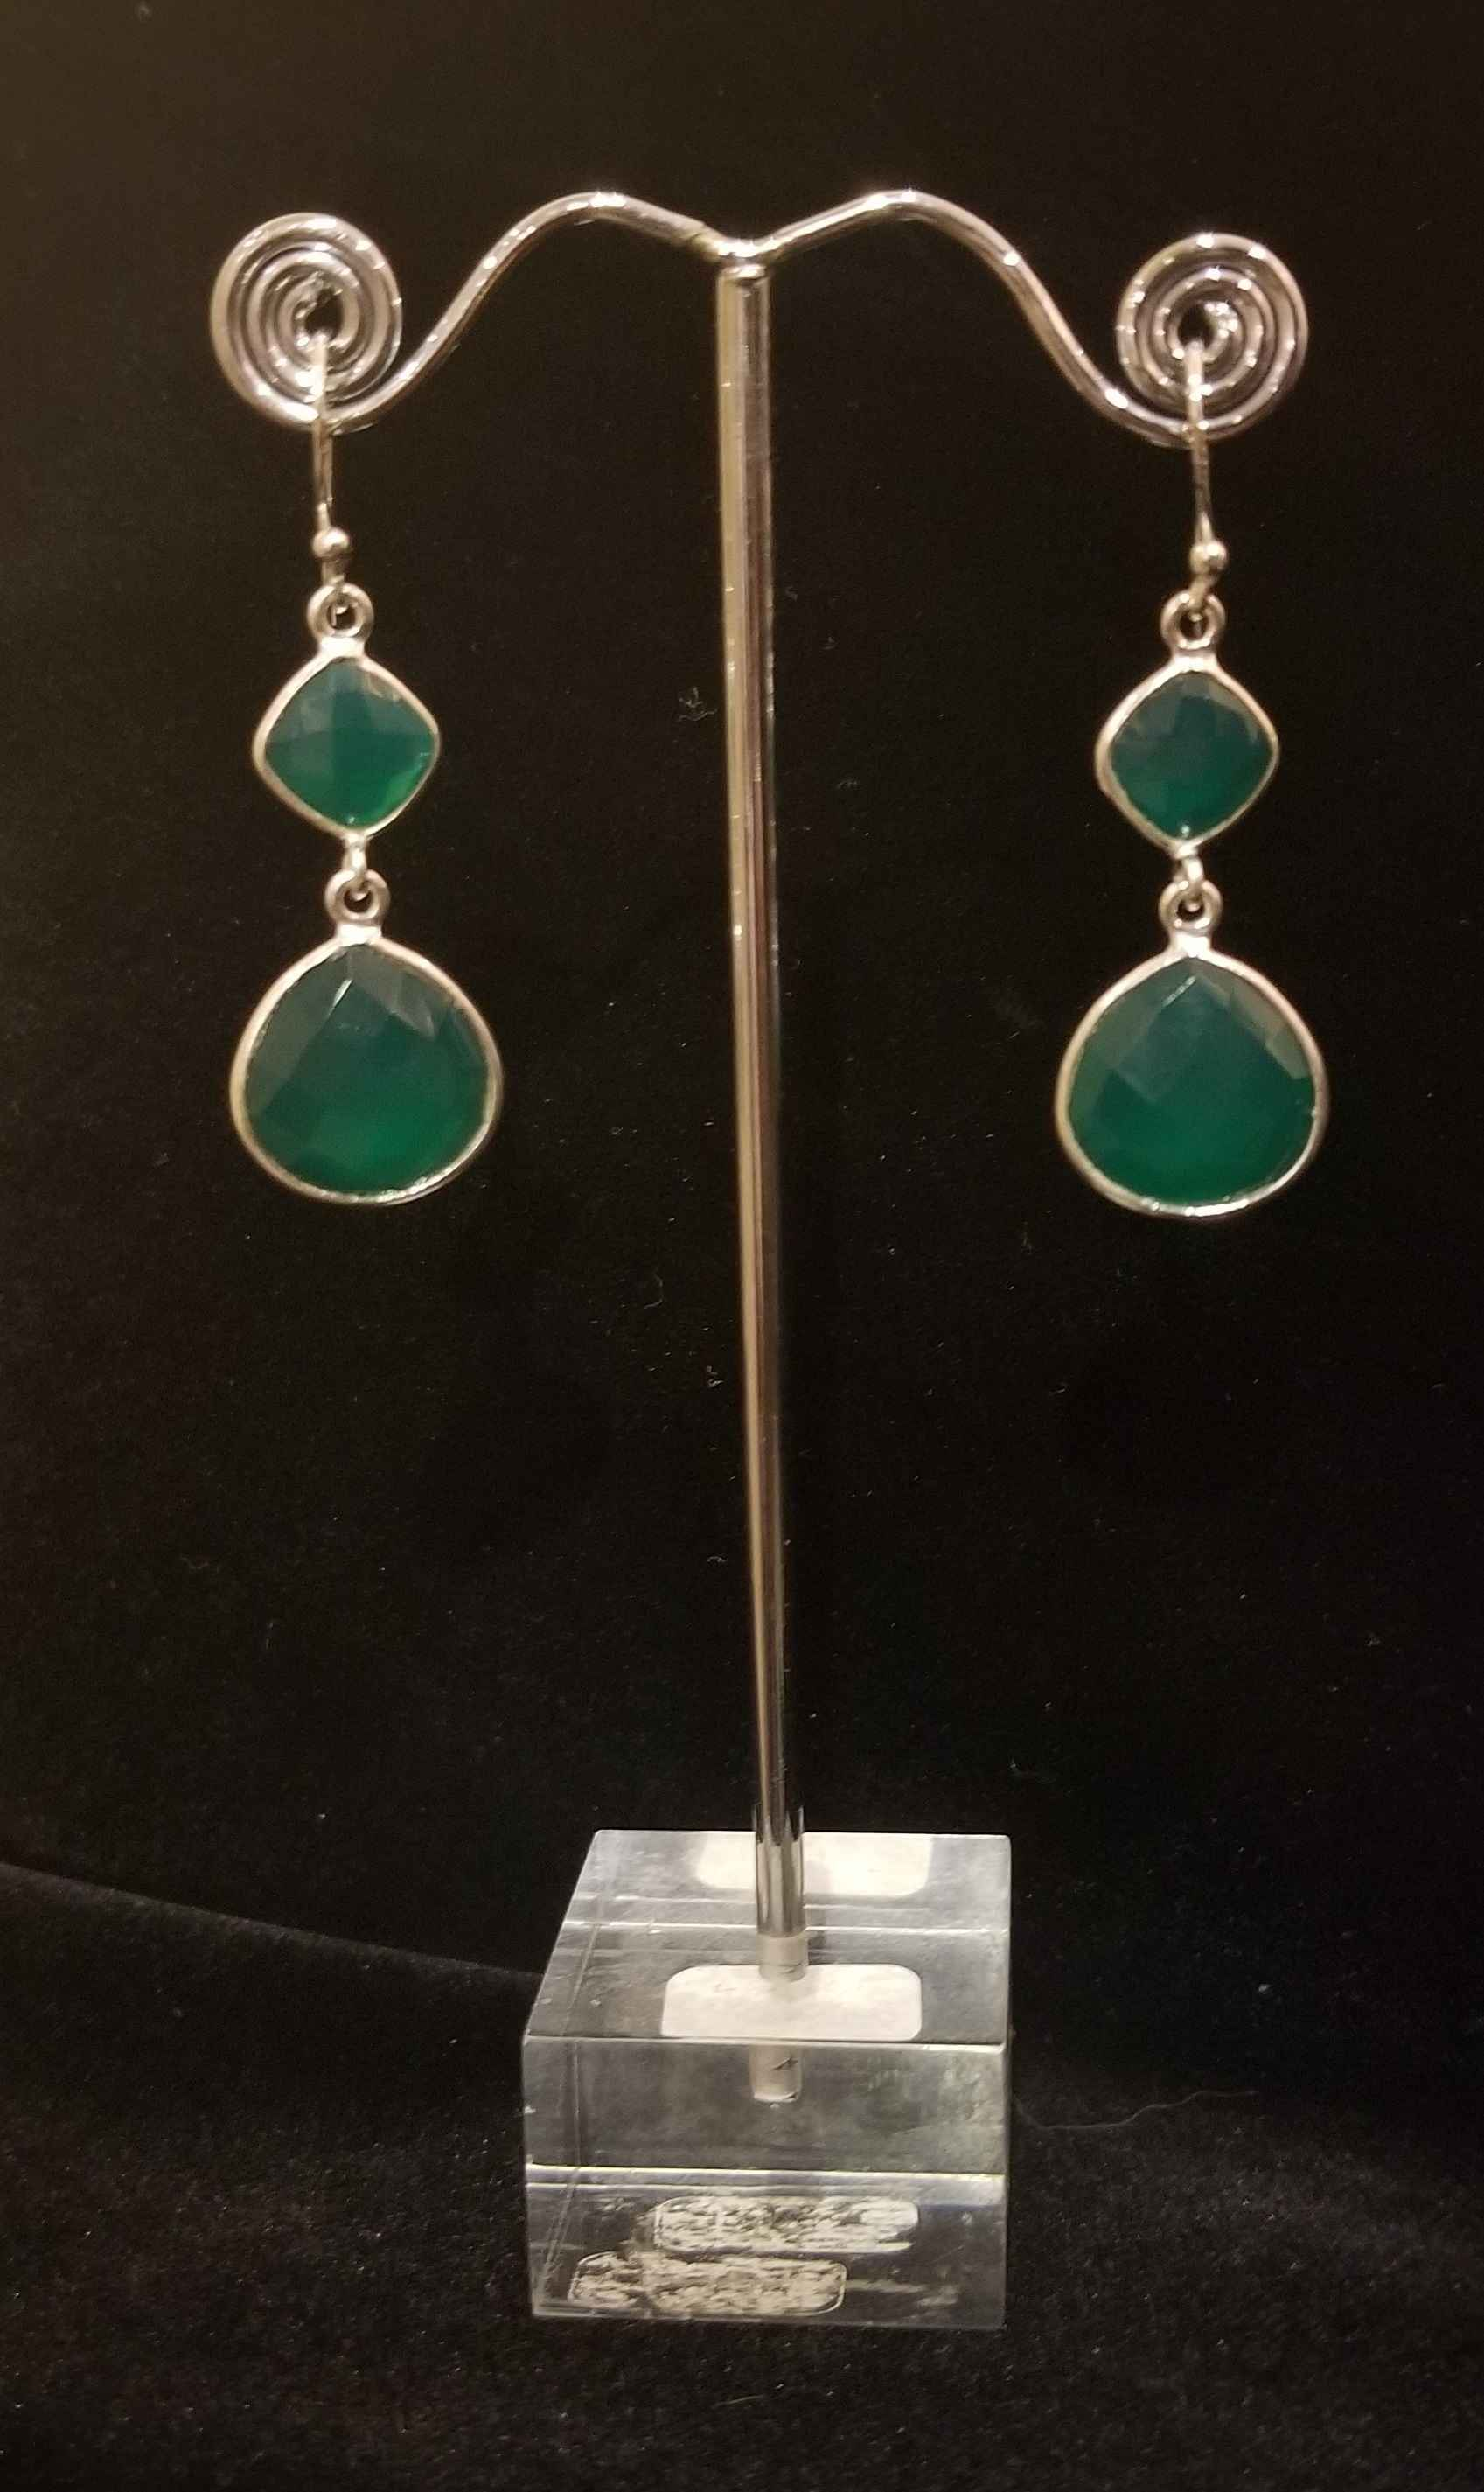 Earrings - Green Quar... by  Gallery Pieces - Masterpiece Online